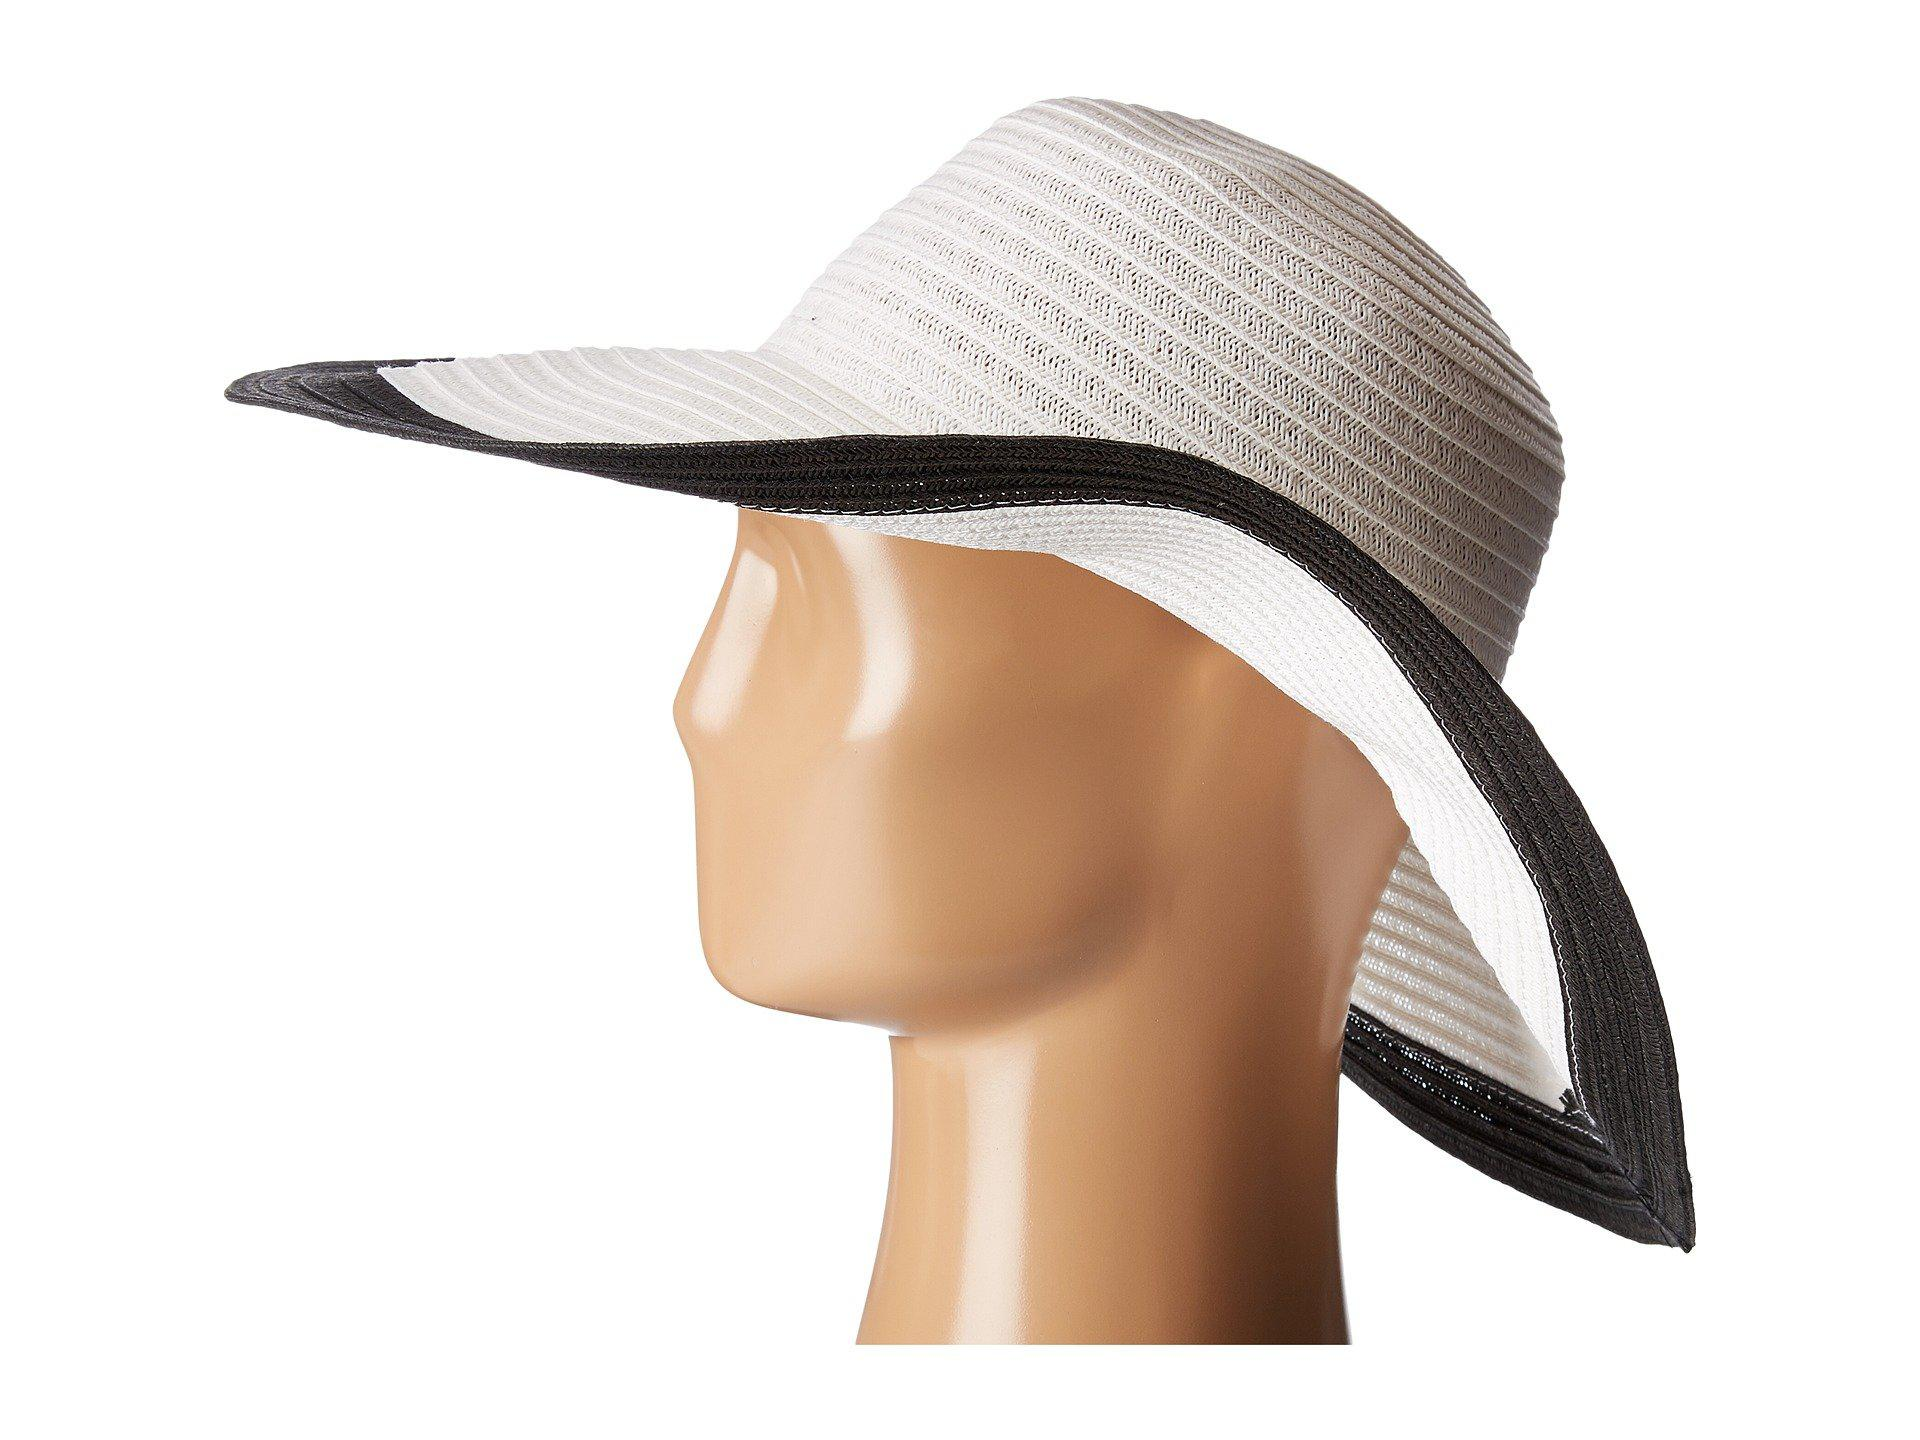 60eec17b San Diego Hat Company - Ubl6491 Four Buttons Floppy Color Block Hat (black/ white. View fullscreen